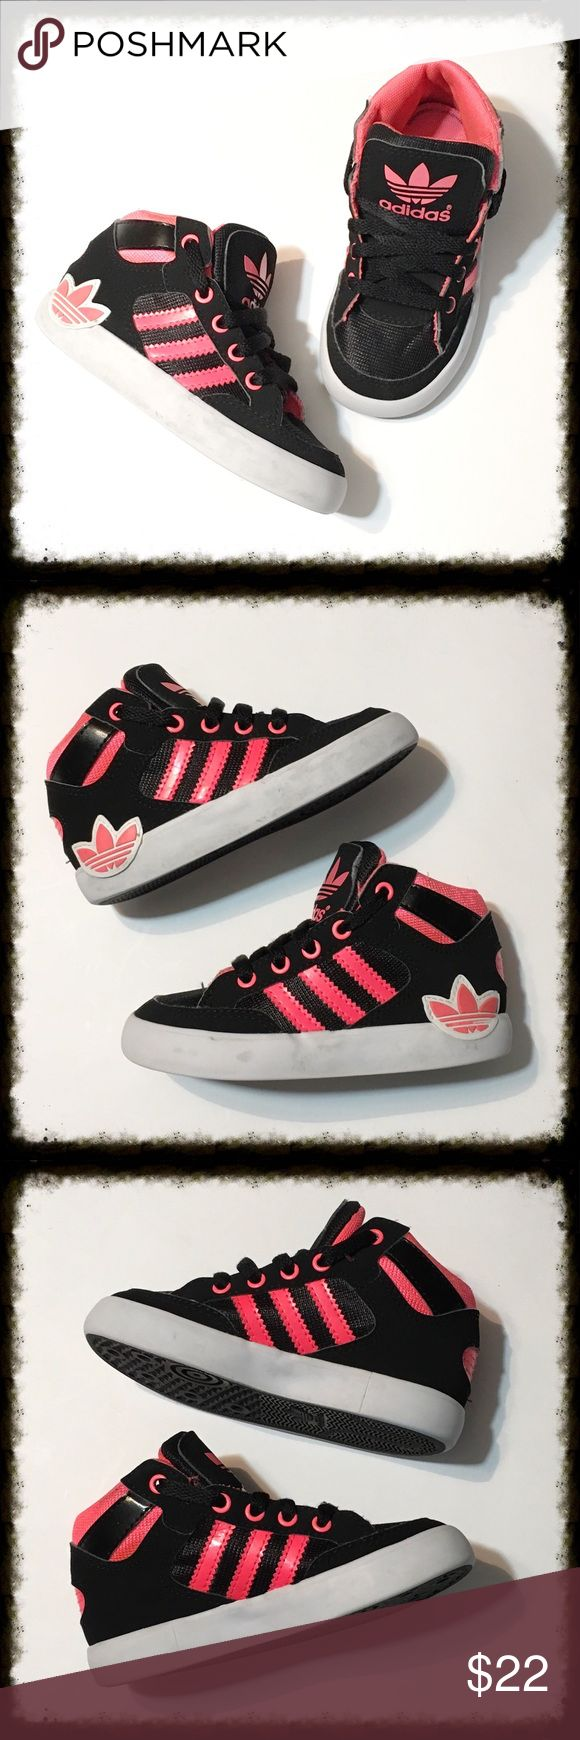 Pink and Coral Adidas Hi Top Sneakers In excellent condition with very light signs of wear. Size 7 kids. Color is a pinkish coral on black. Adidas Shoes Sneakers